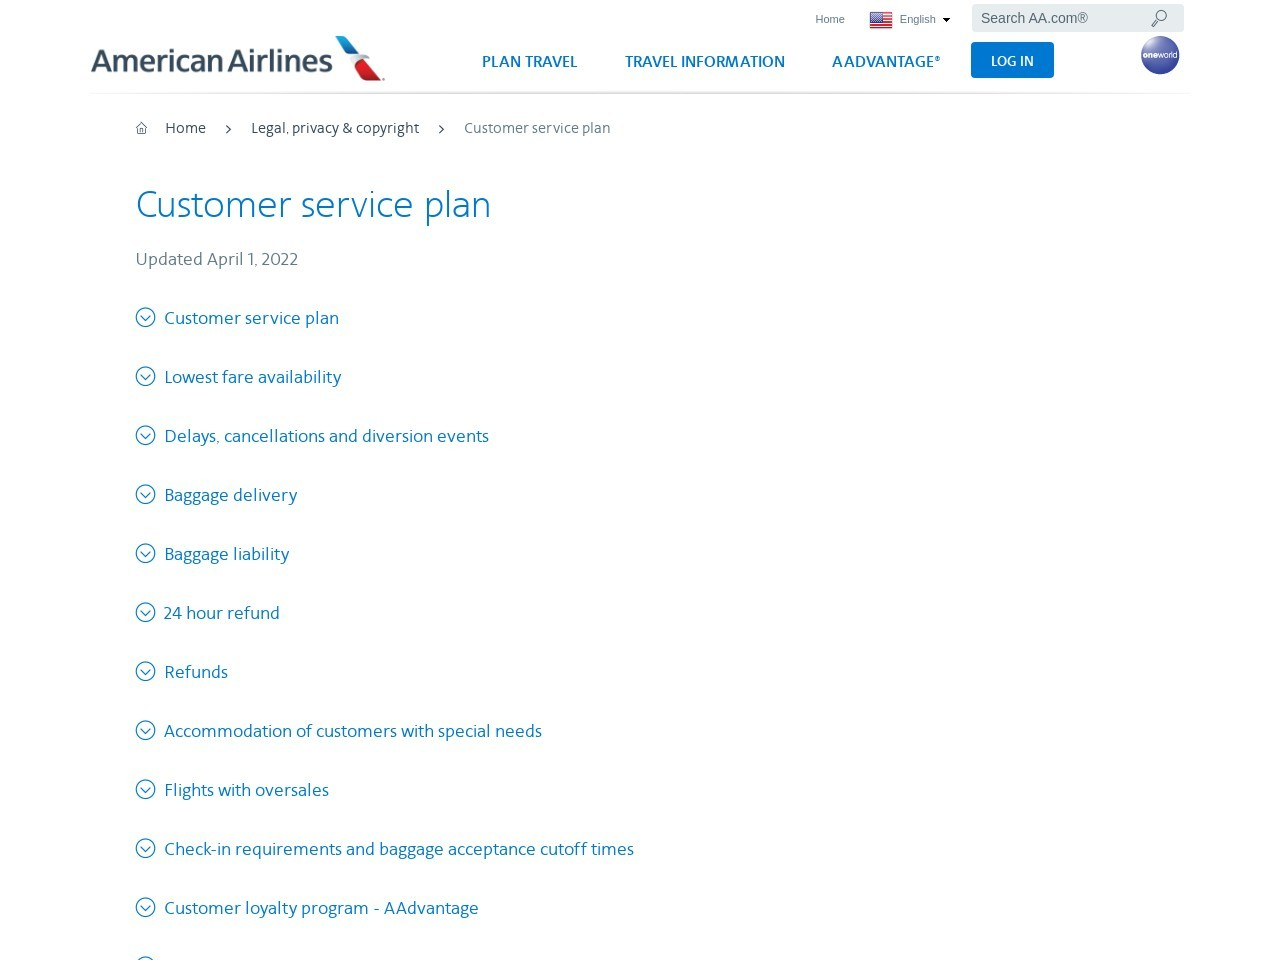 Customer service plan − Support − American Airlines